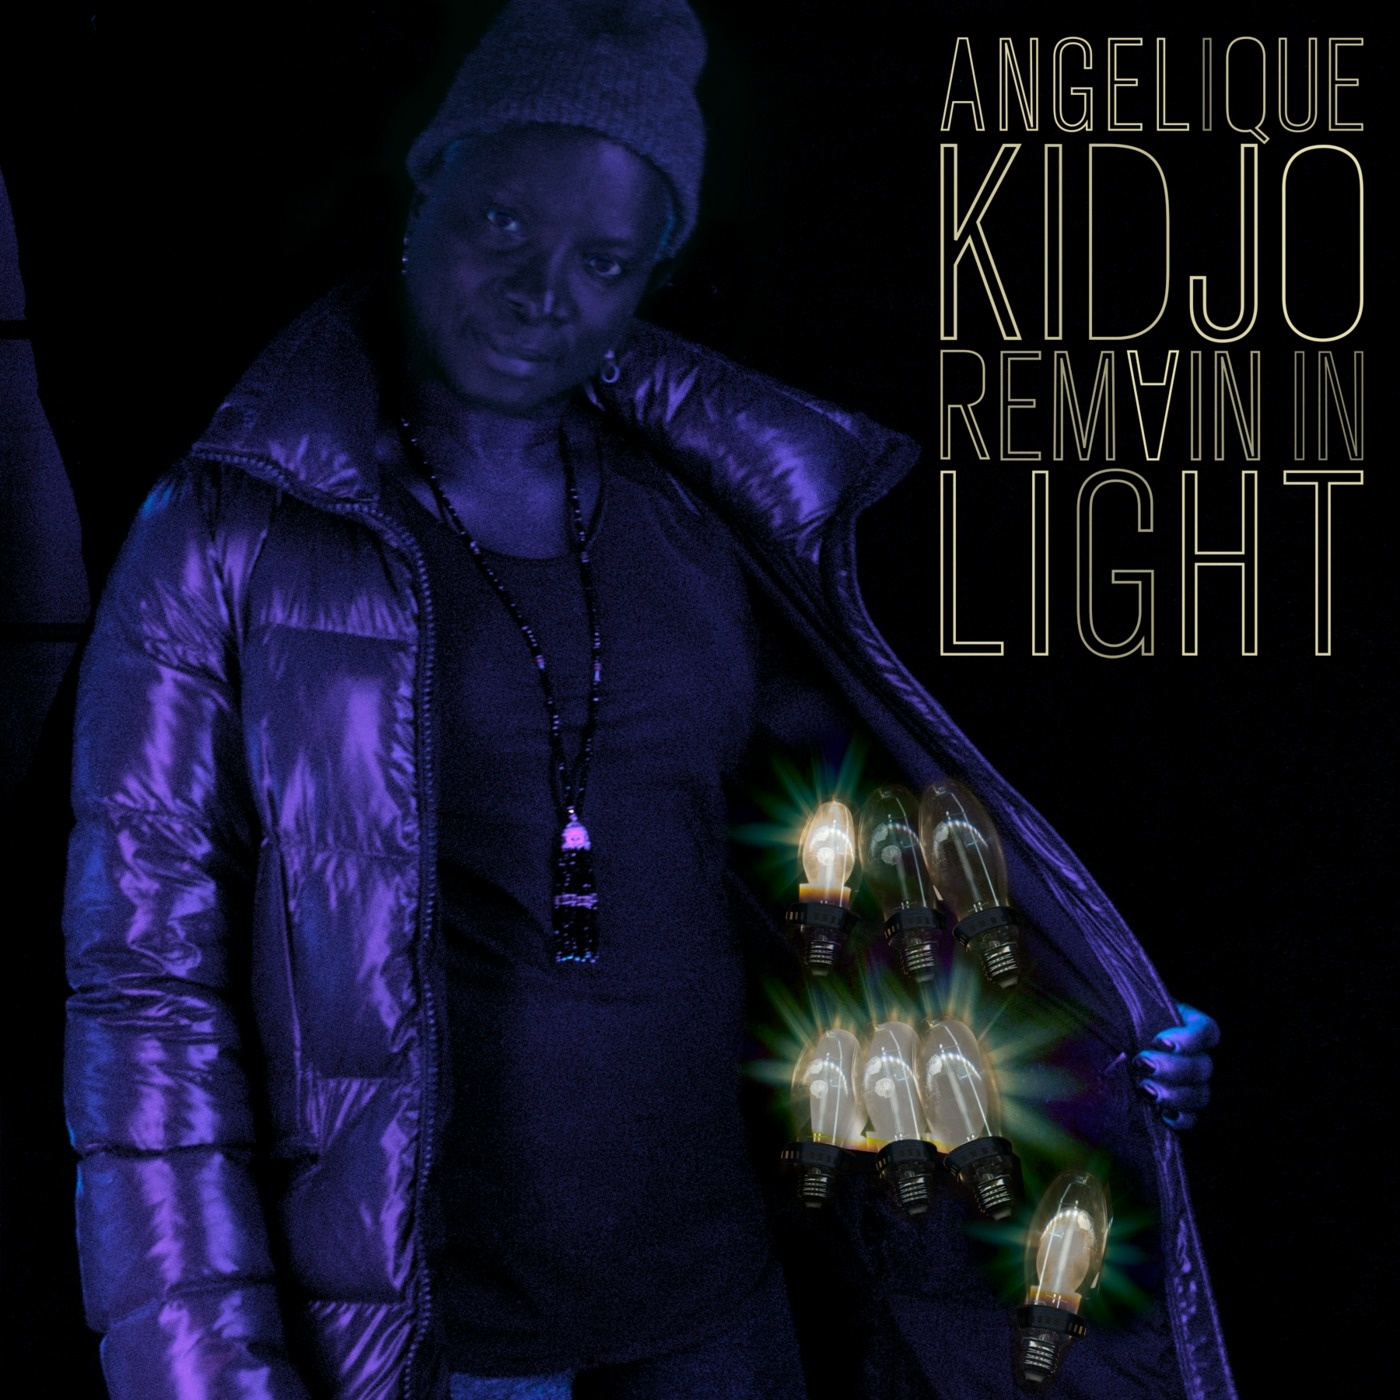 cover-angc3a9lique-kidjo-remain-in-light